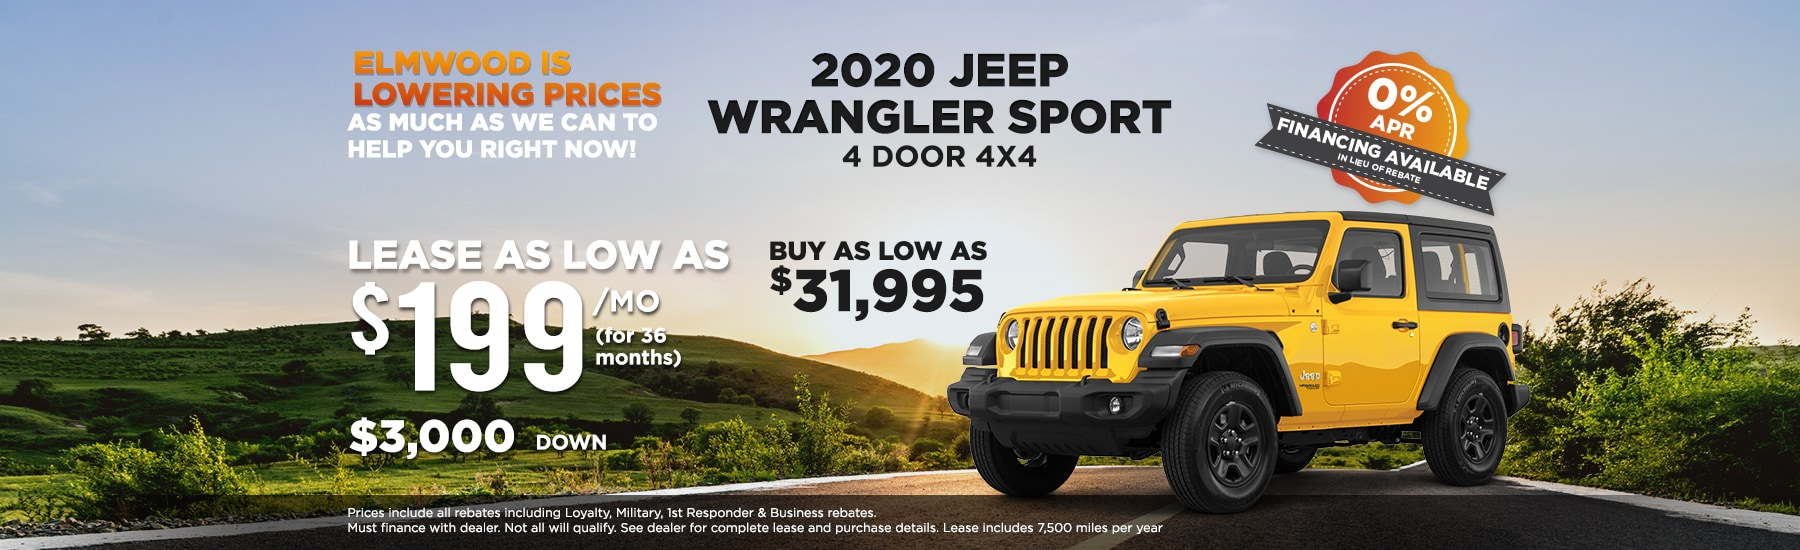 2020 Jeep Wrangler Sport lease deal